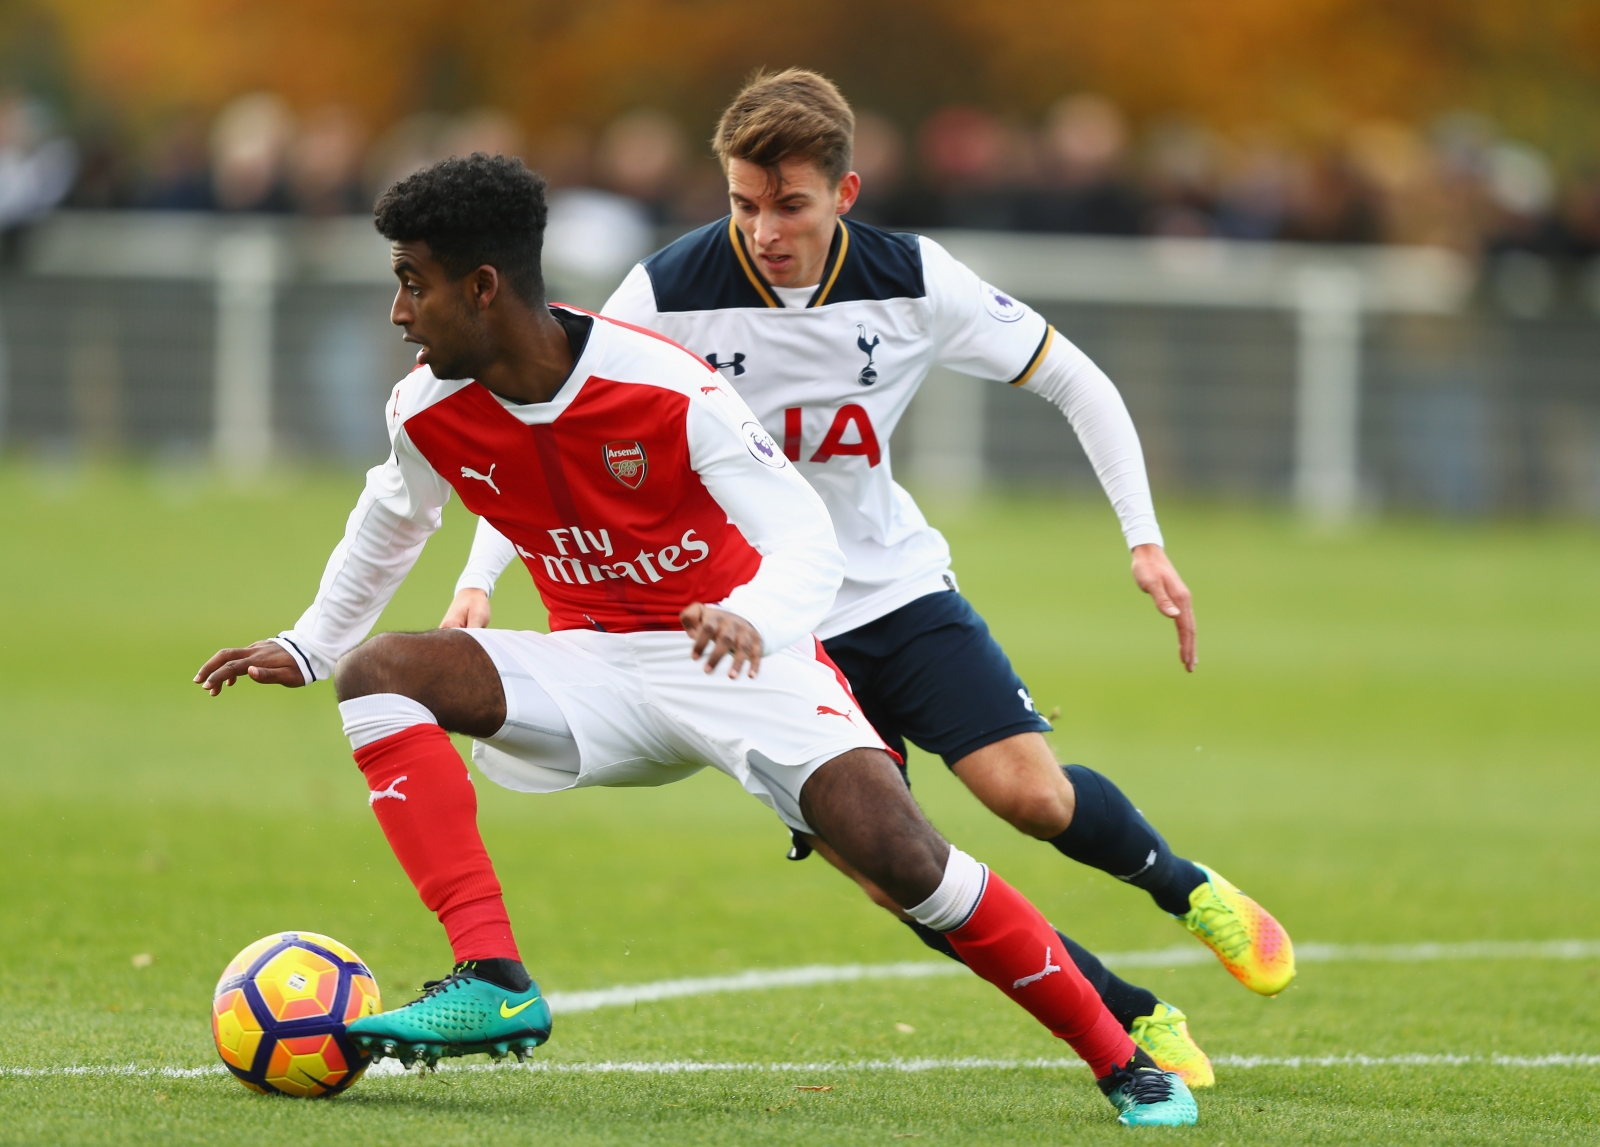 Arsenal allow Gedion Zelalem to leave on loan